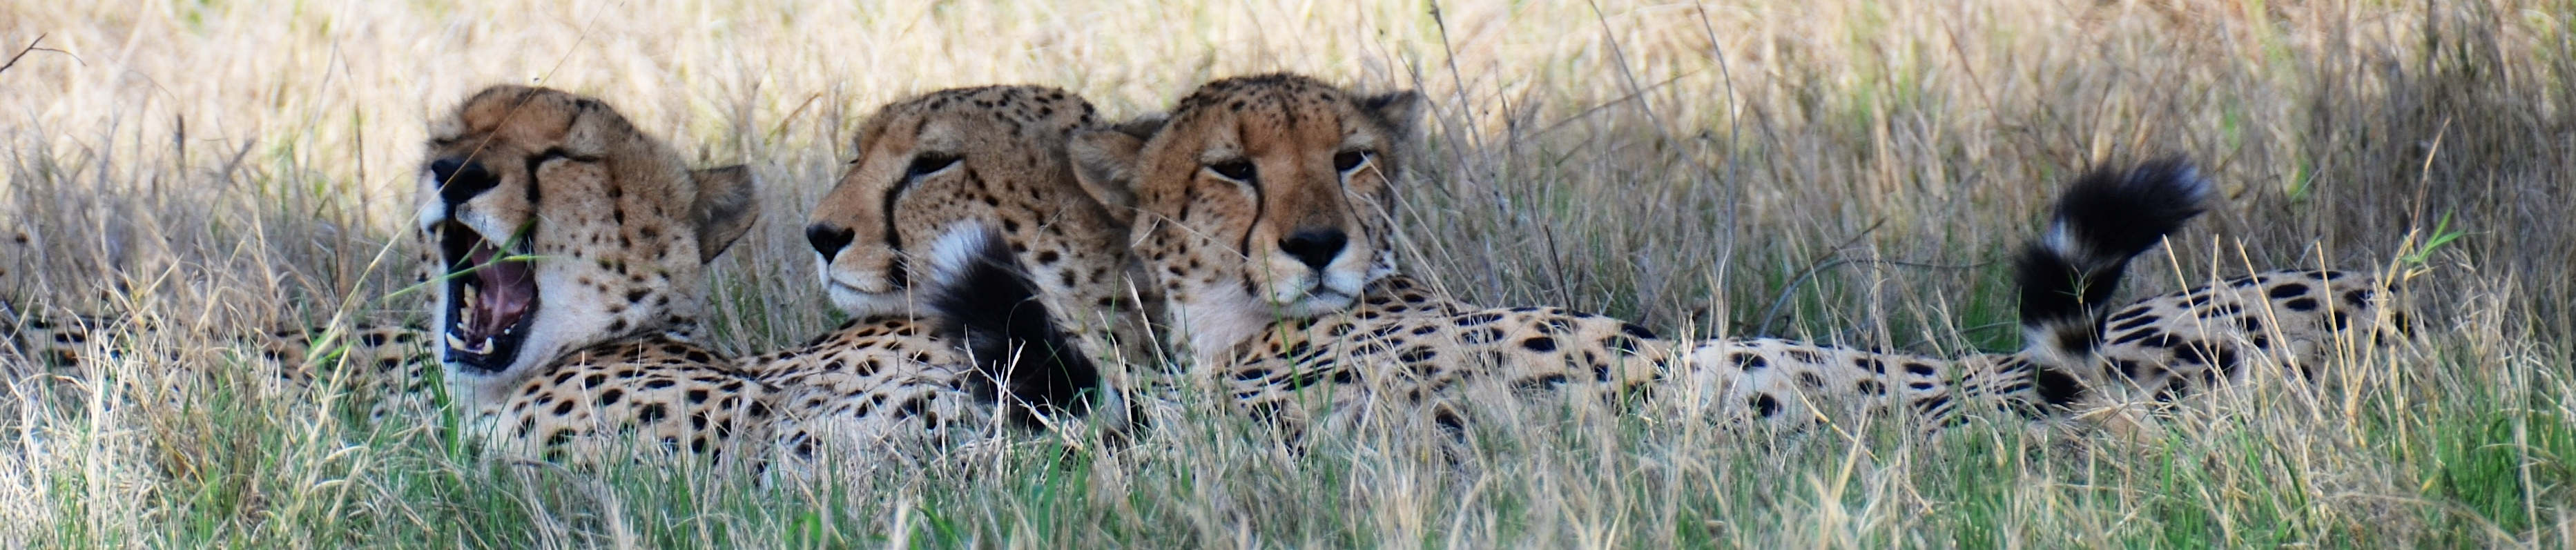 Cheetahs with 3 Expressions